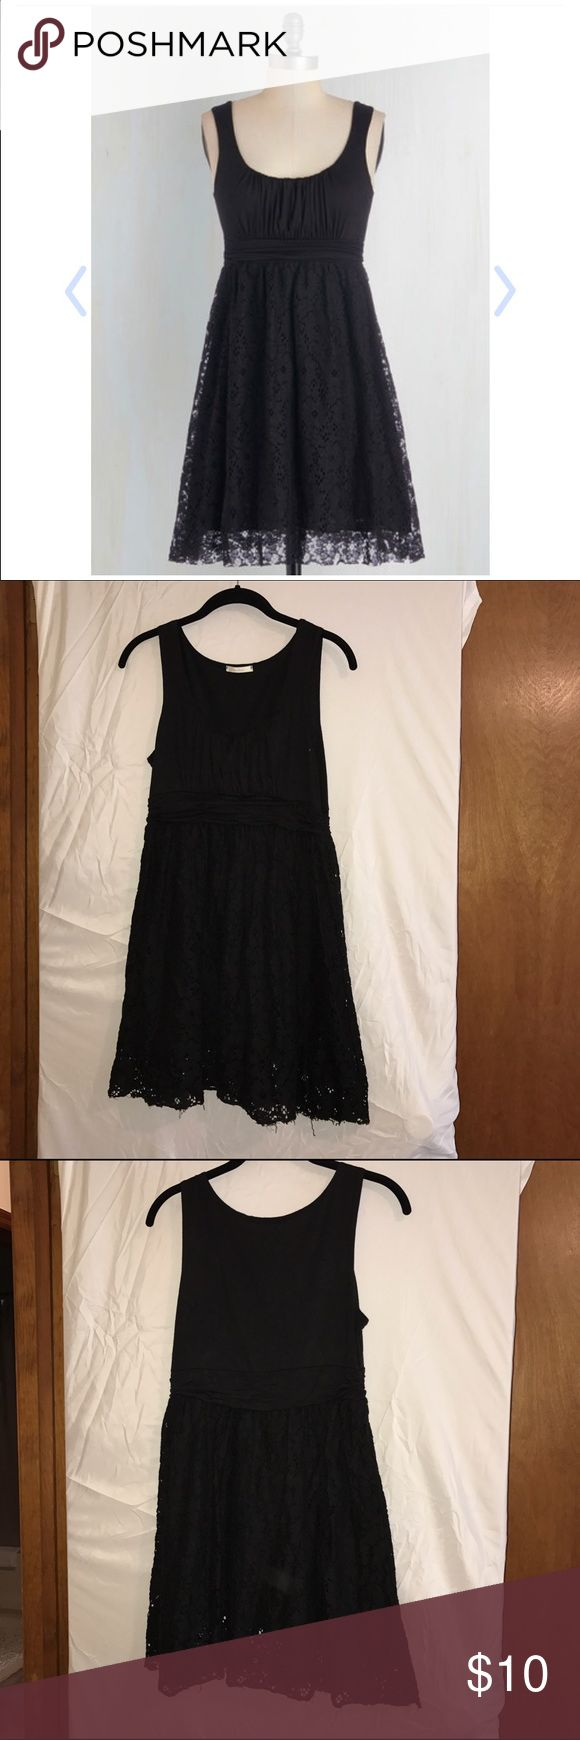 ModCloth- Artisan Iced Tea Dress in Black Super cute and comfortable dress! I paid a $36 sale price originally (we all know how prices fluctuate on ModCloth!) Very versatile, can be dressed up or down. maitai Dresses